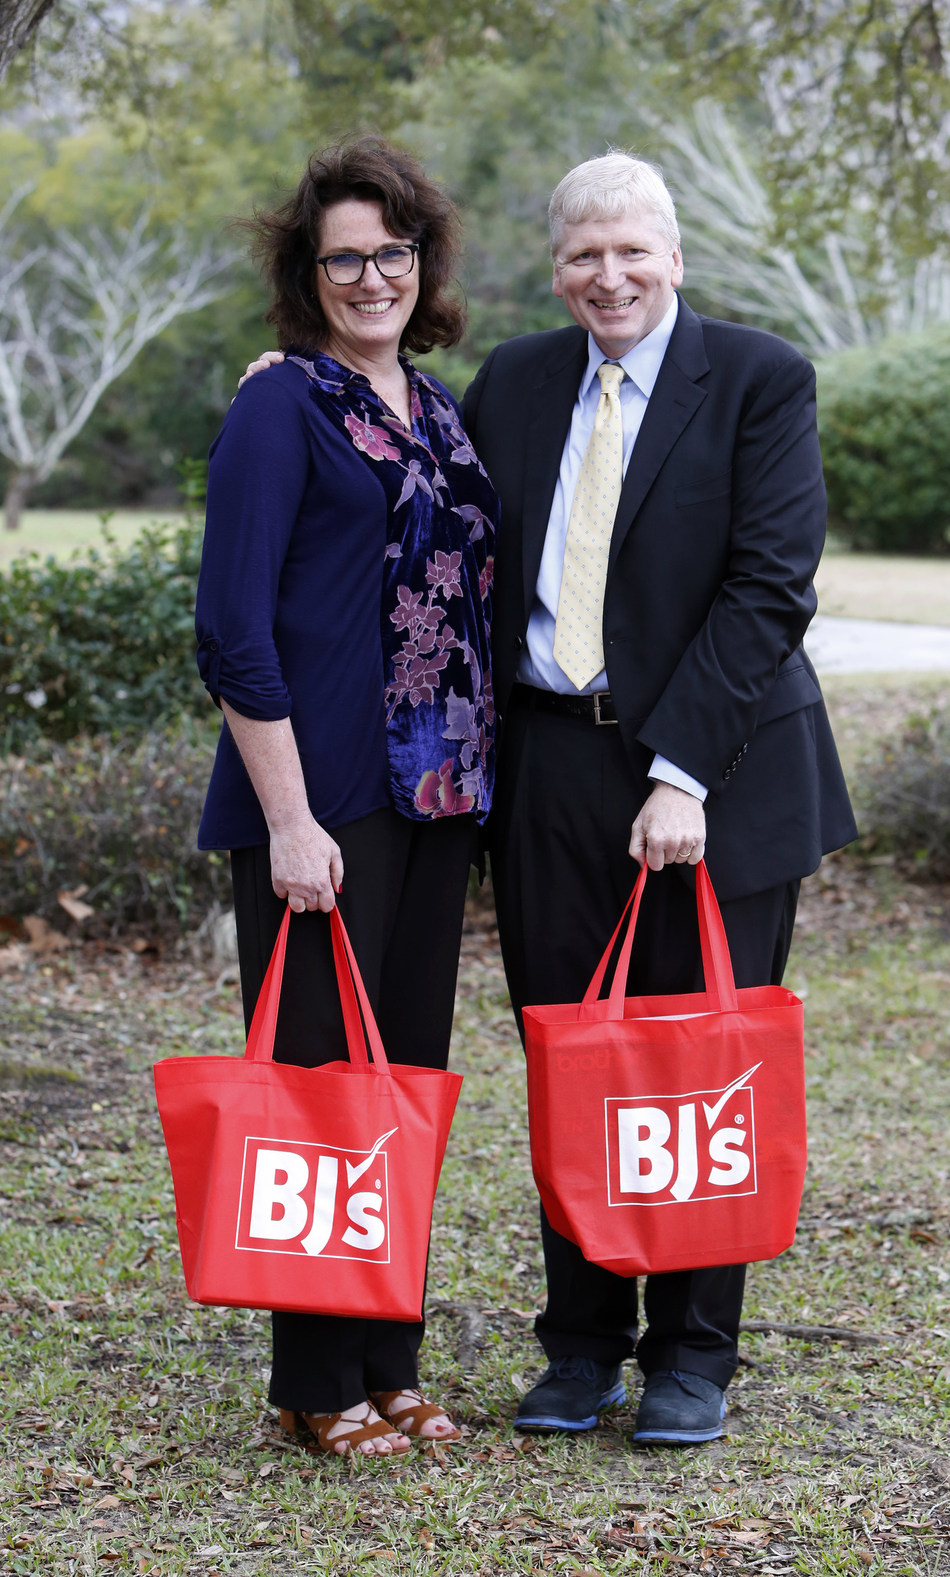 Kirk Saville, senior vice president, corporate communications at BJ's Wholesale Club (right) presents Robin Smith, teacher at Edmund A Burns Elementary School (left) on Thursday, Jan. 26, 2017, in Mount Pleasant, S.C. with the announcement that BJ's Wholesale Club has donated over $100,000 to help fund classroom projects in Summerville, Charleston and the surrounding areas in South Carolina through DonorsChoose.org. (Mic Smith/AP Images for BJ's Wholesale Club)